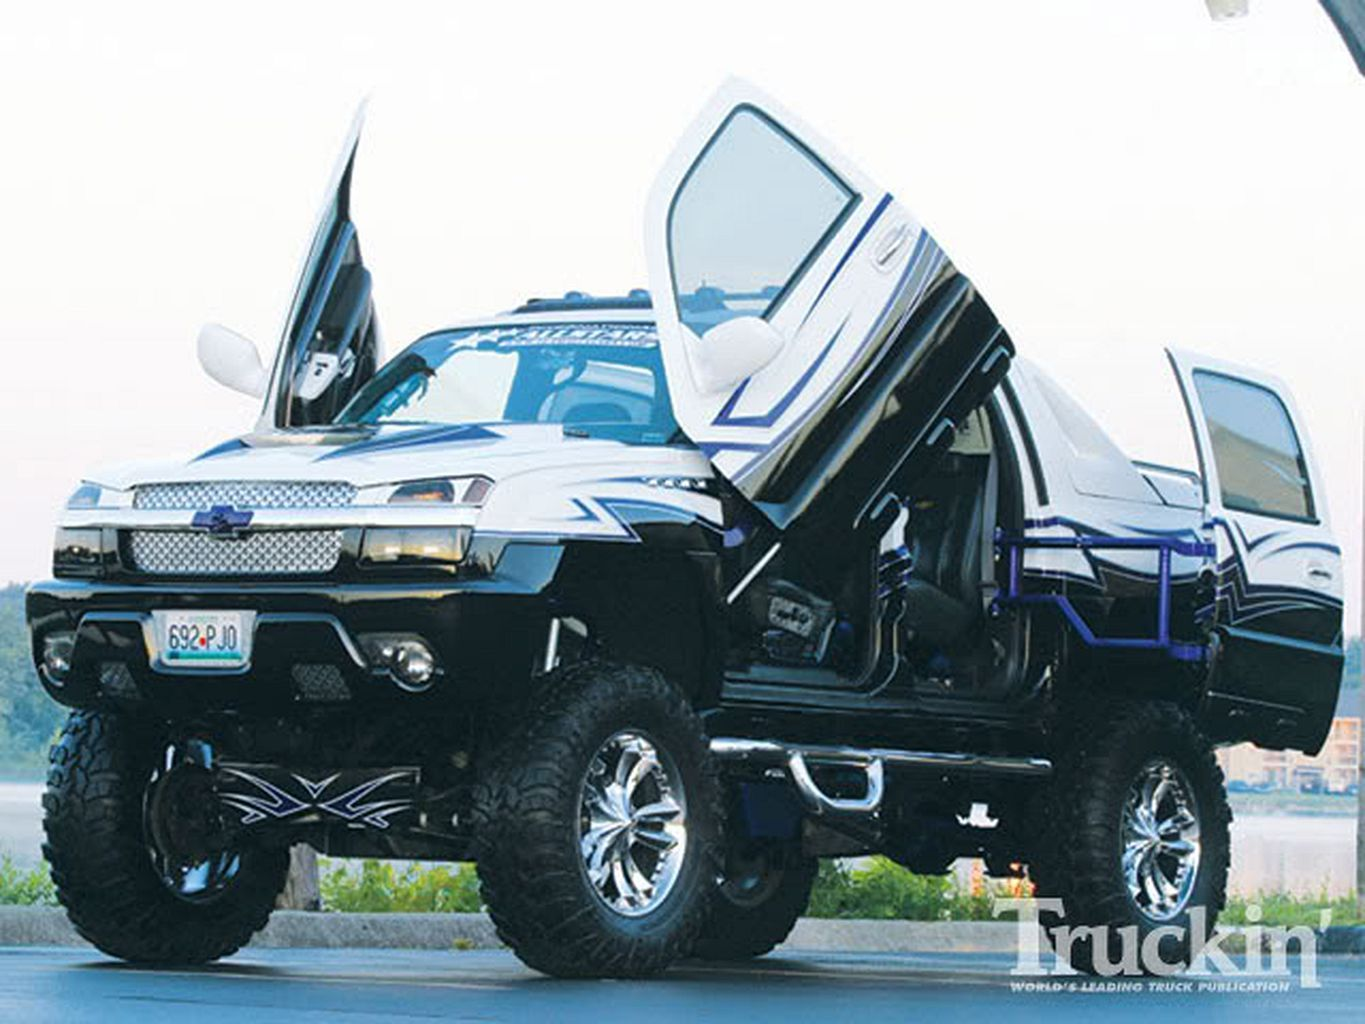 Chevy Avalanche Custom Car Https Www Mobmasker Com Chevy Avalanche Custom Car Chevy Avalanche Jacked Up Trucks Avalanche Truck